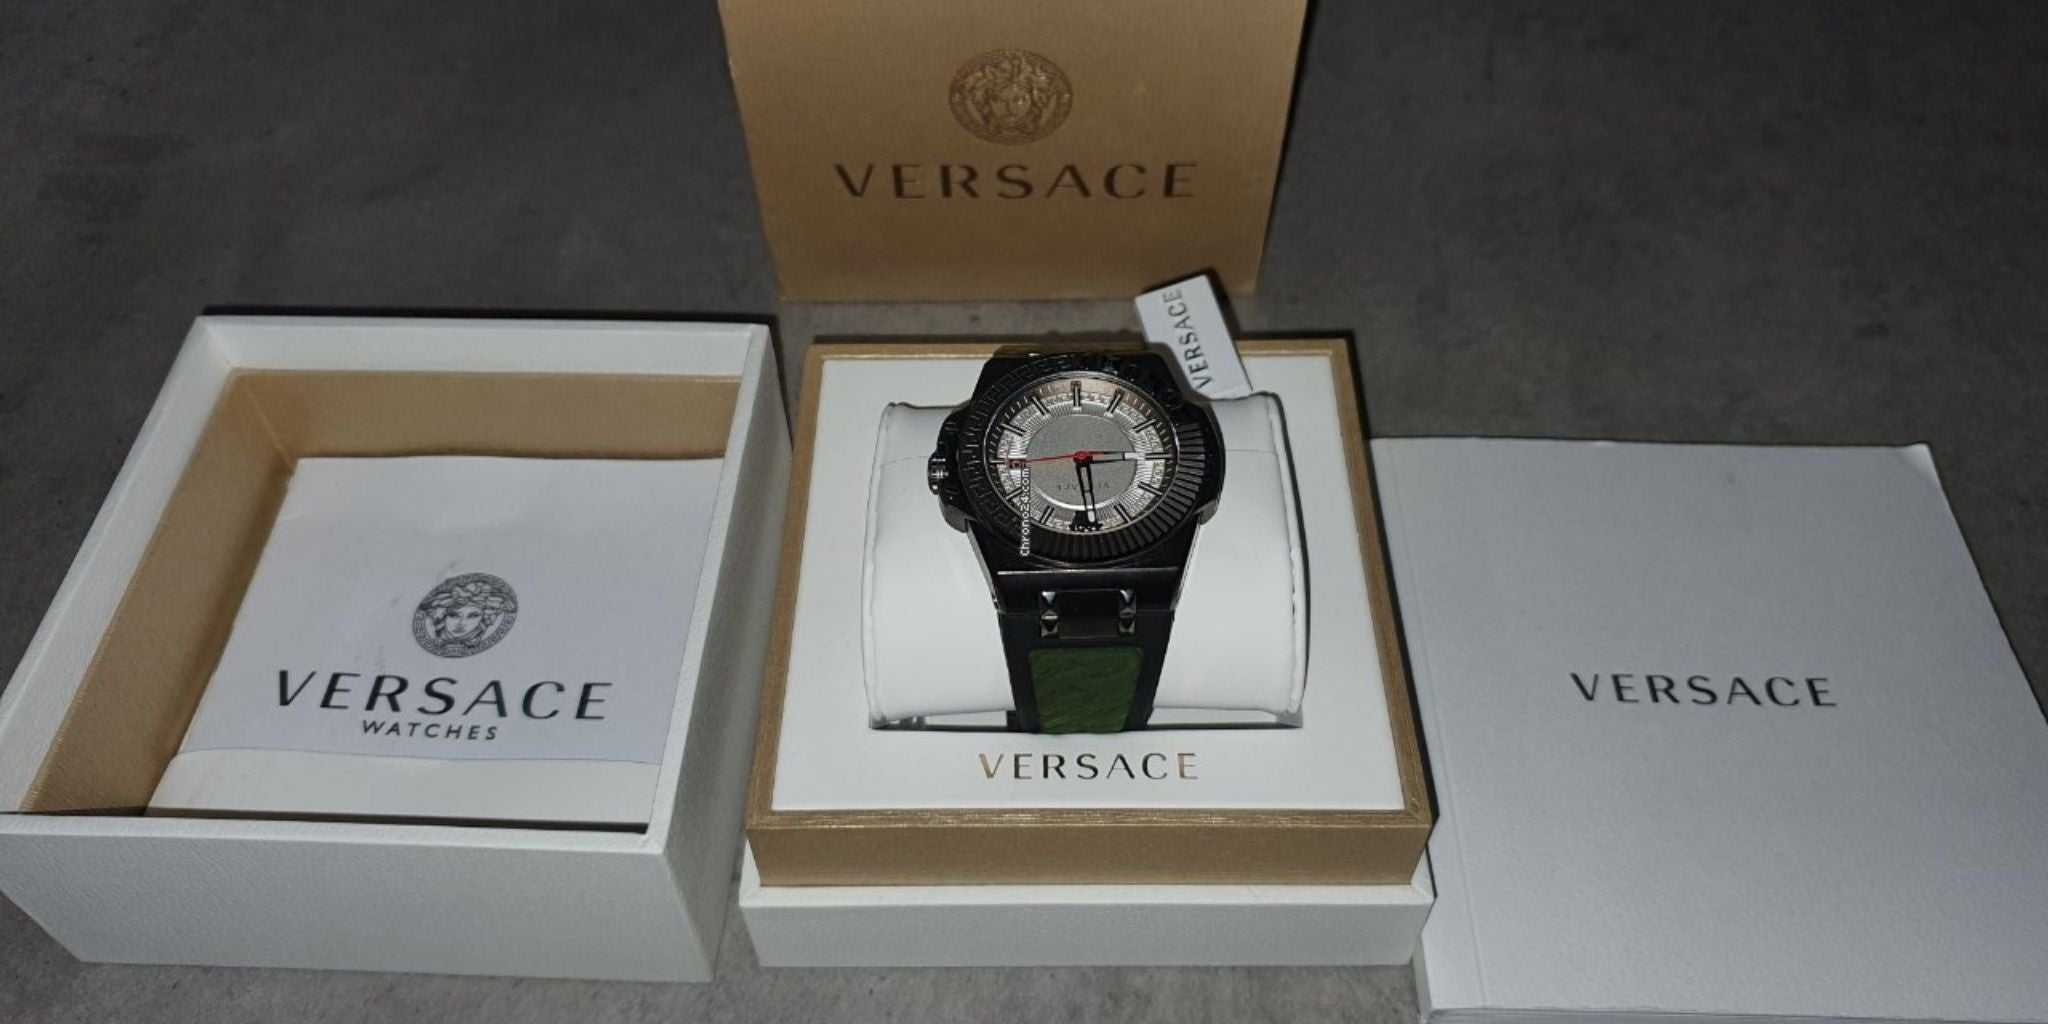 Get prompt delivery of Versace watches